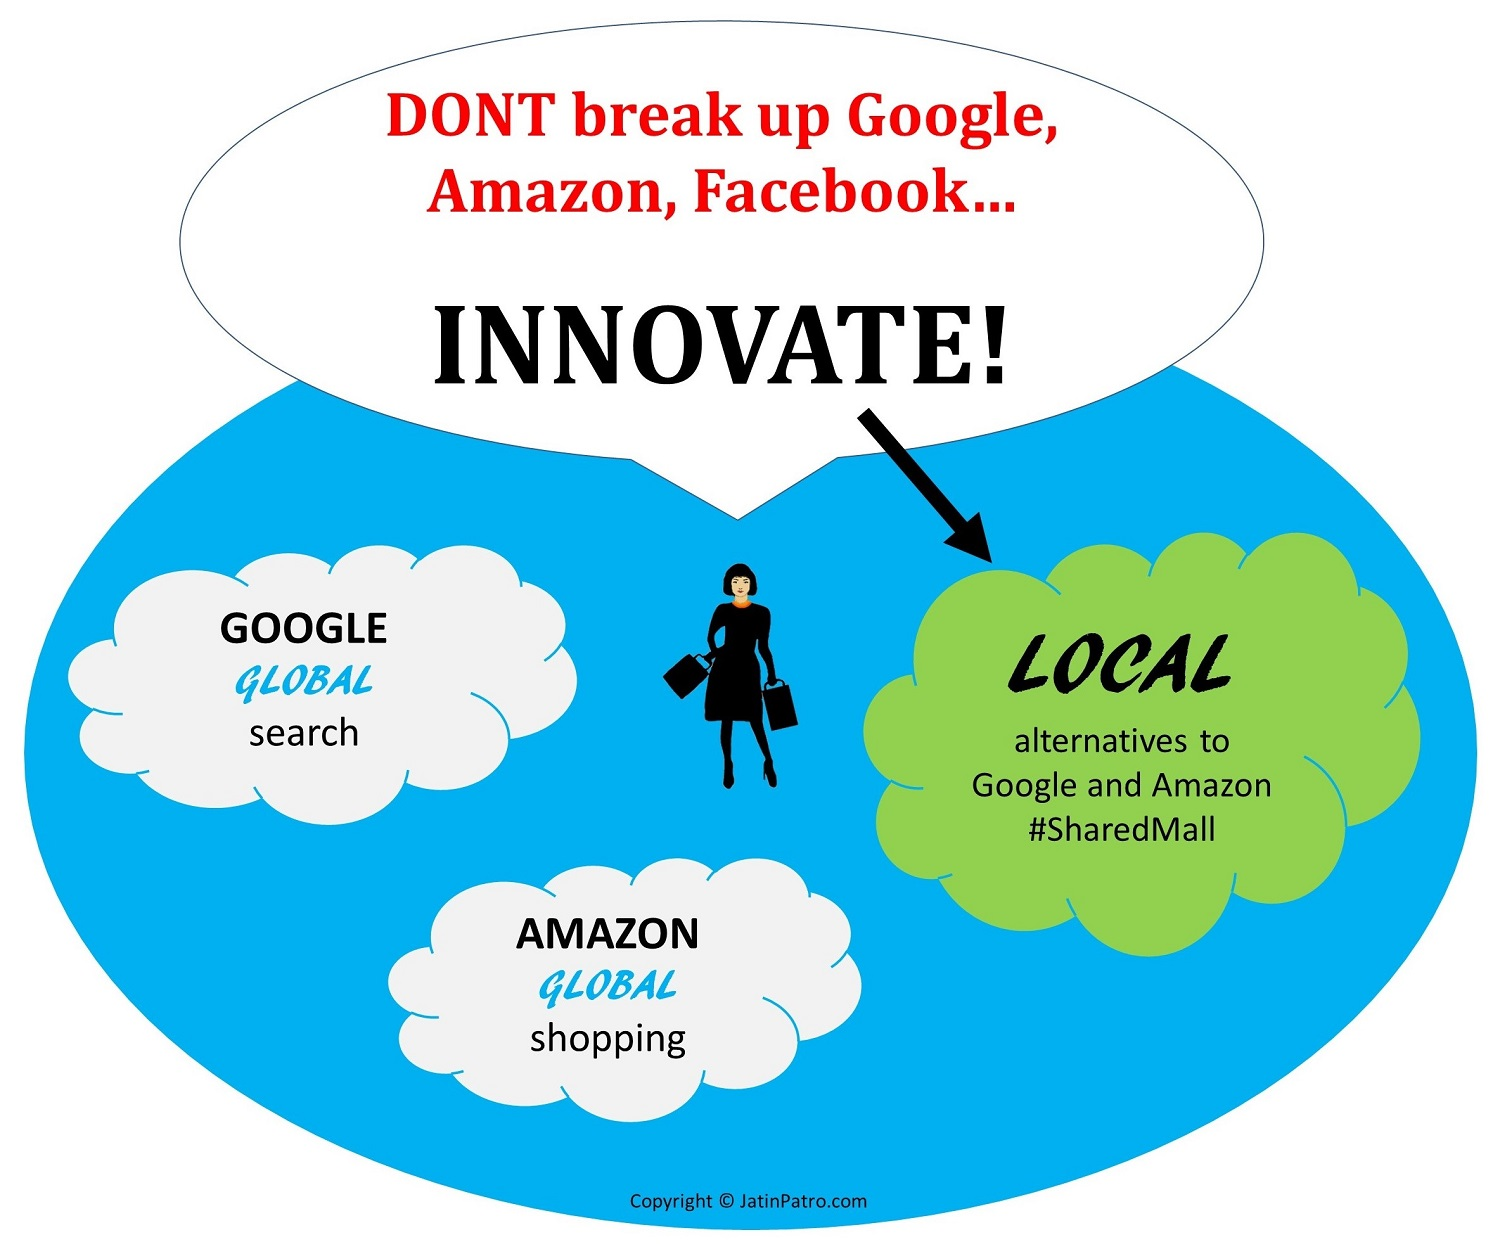 Don't break up Big Tech Google, Amazon, and Facebook - Innovate!